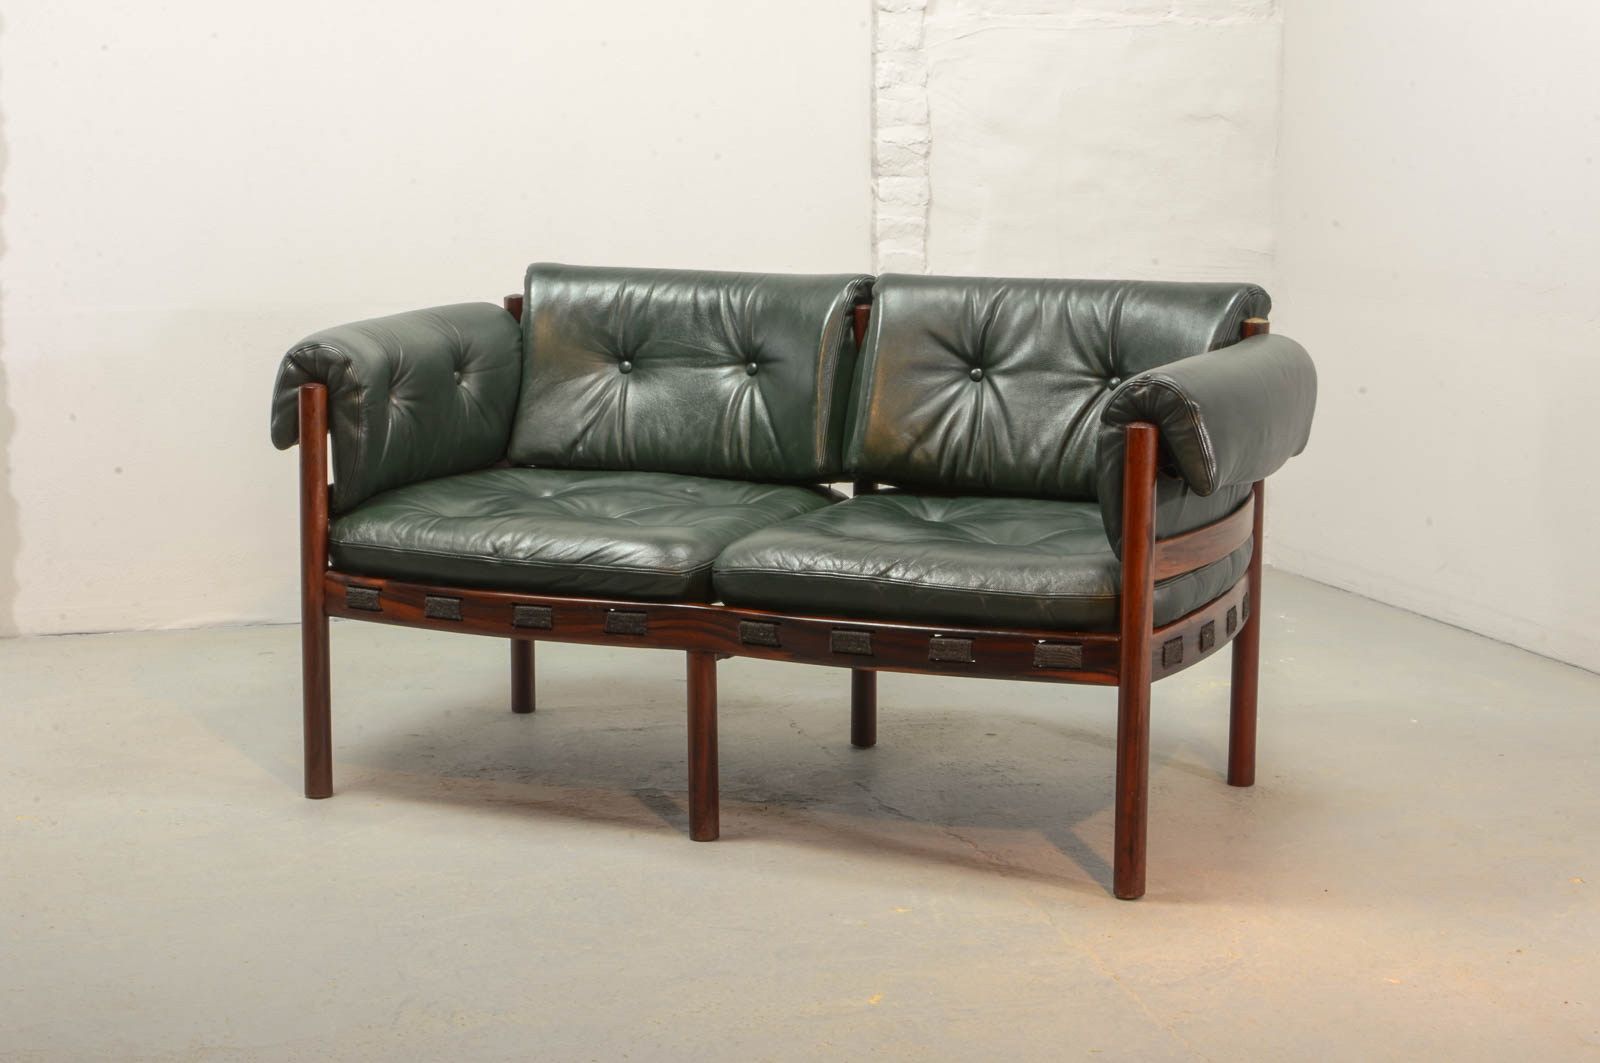 Super Midcentury Two Seat Rosewood And Green Leather Sofa By Arne Gmtry Best Dining Table And Chair Ideas Images Gmtryco